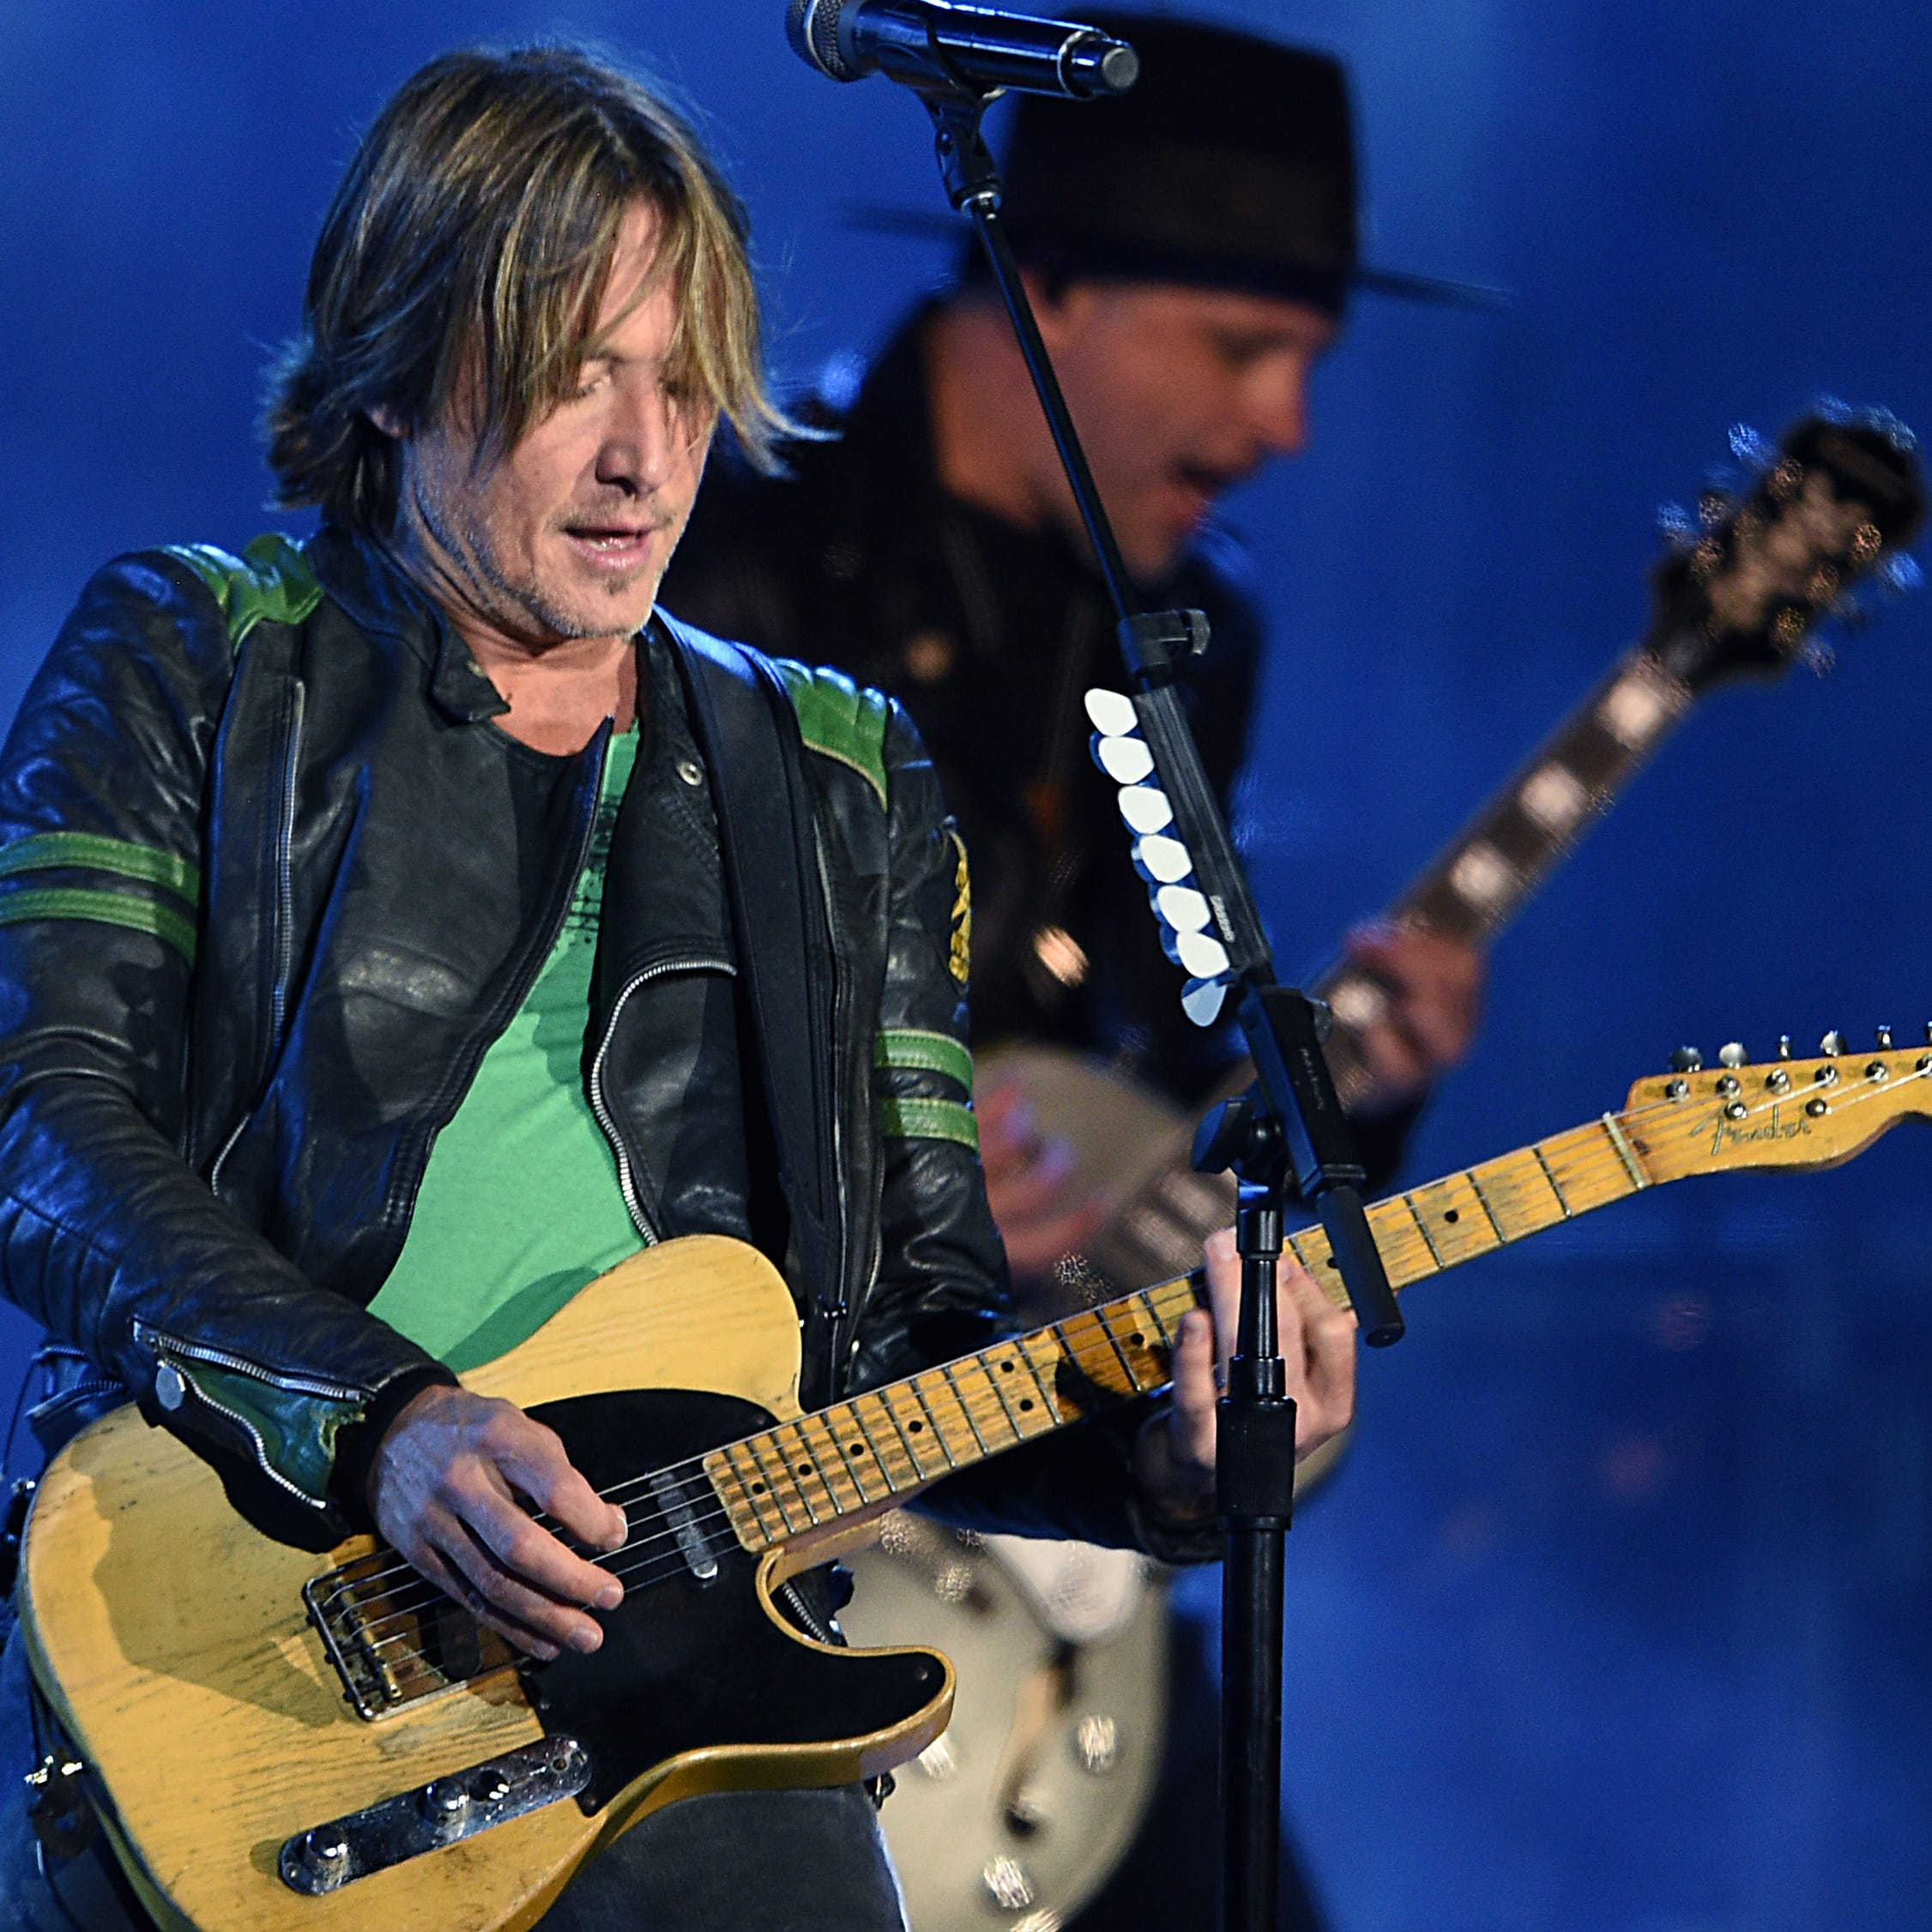 Keith Urban one of 4 headliners for shortened Riverbend Festival in Chattanooga